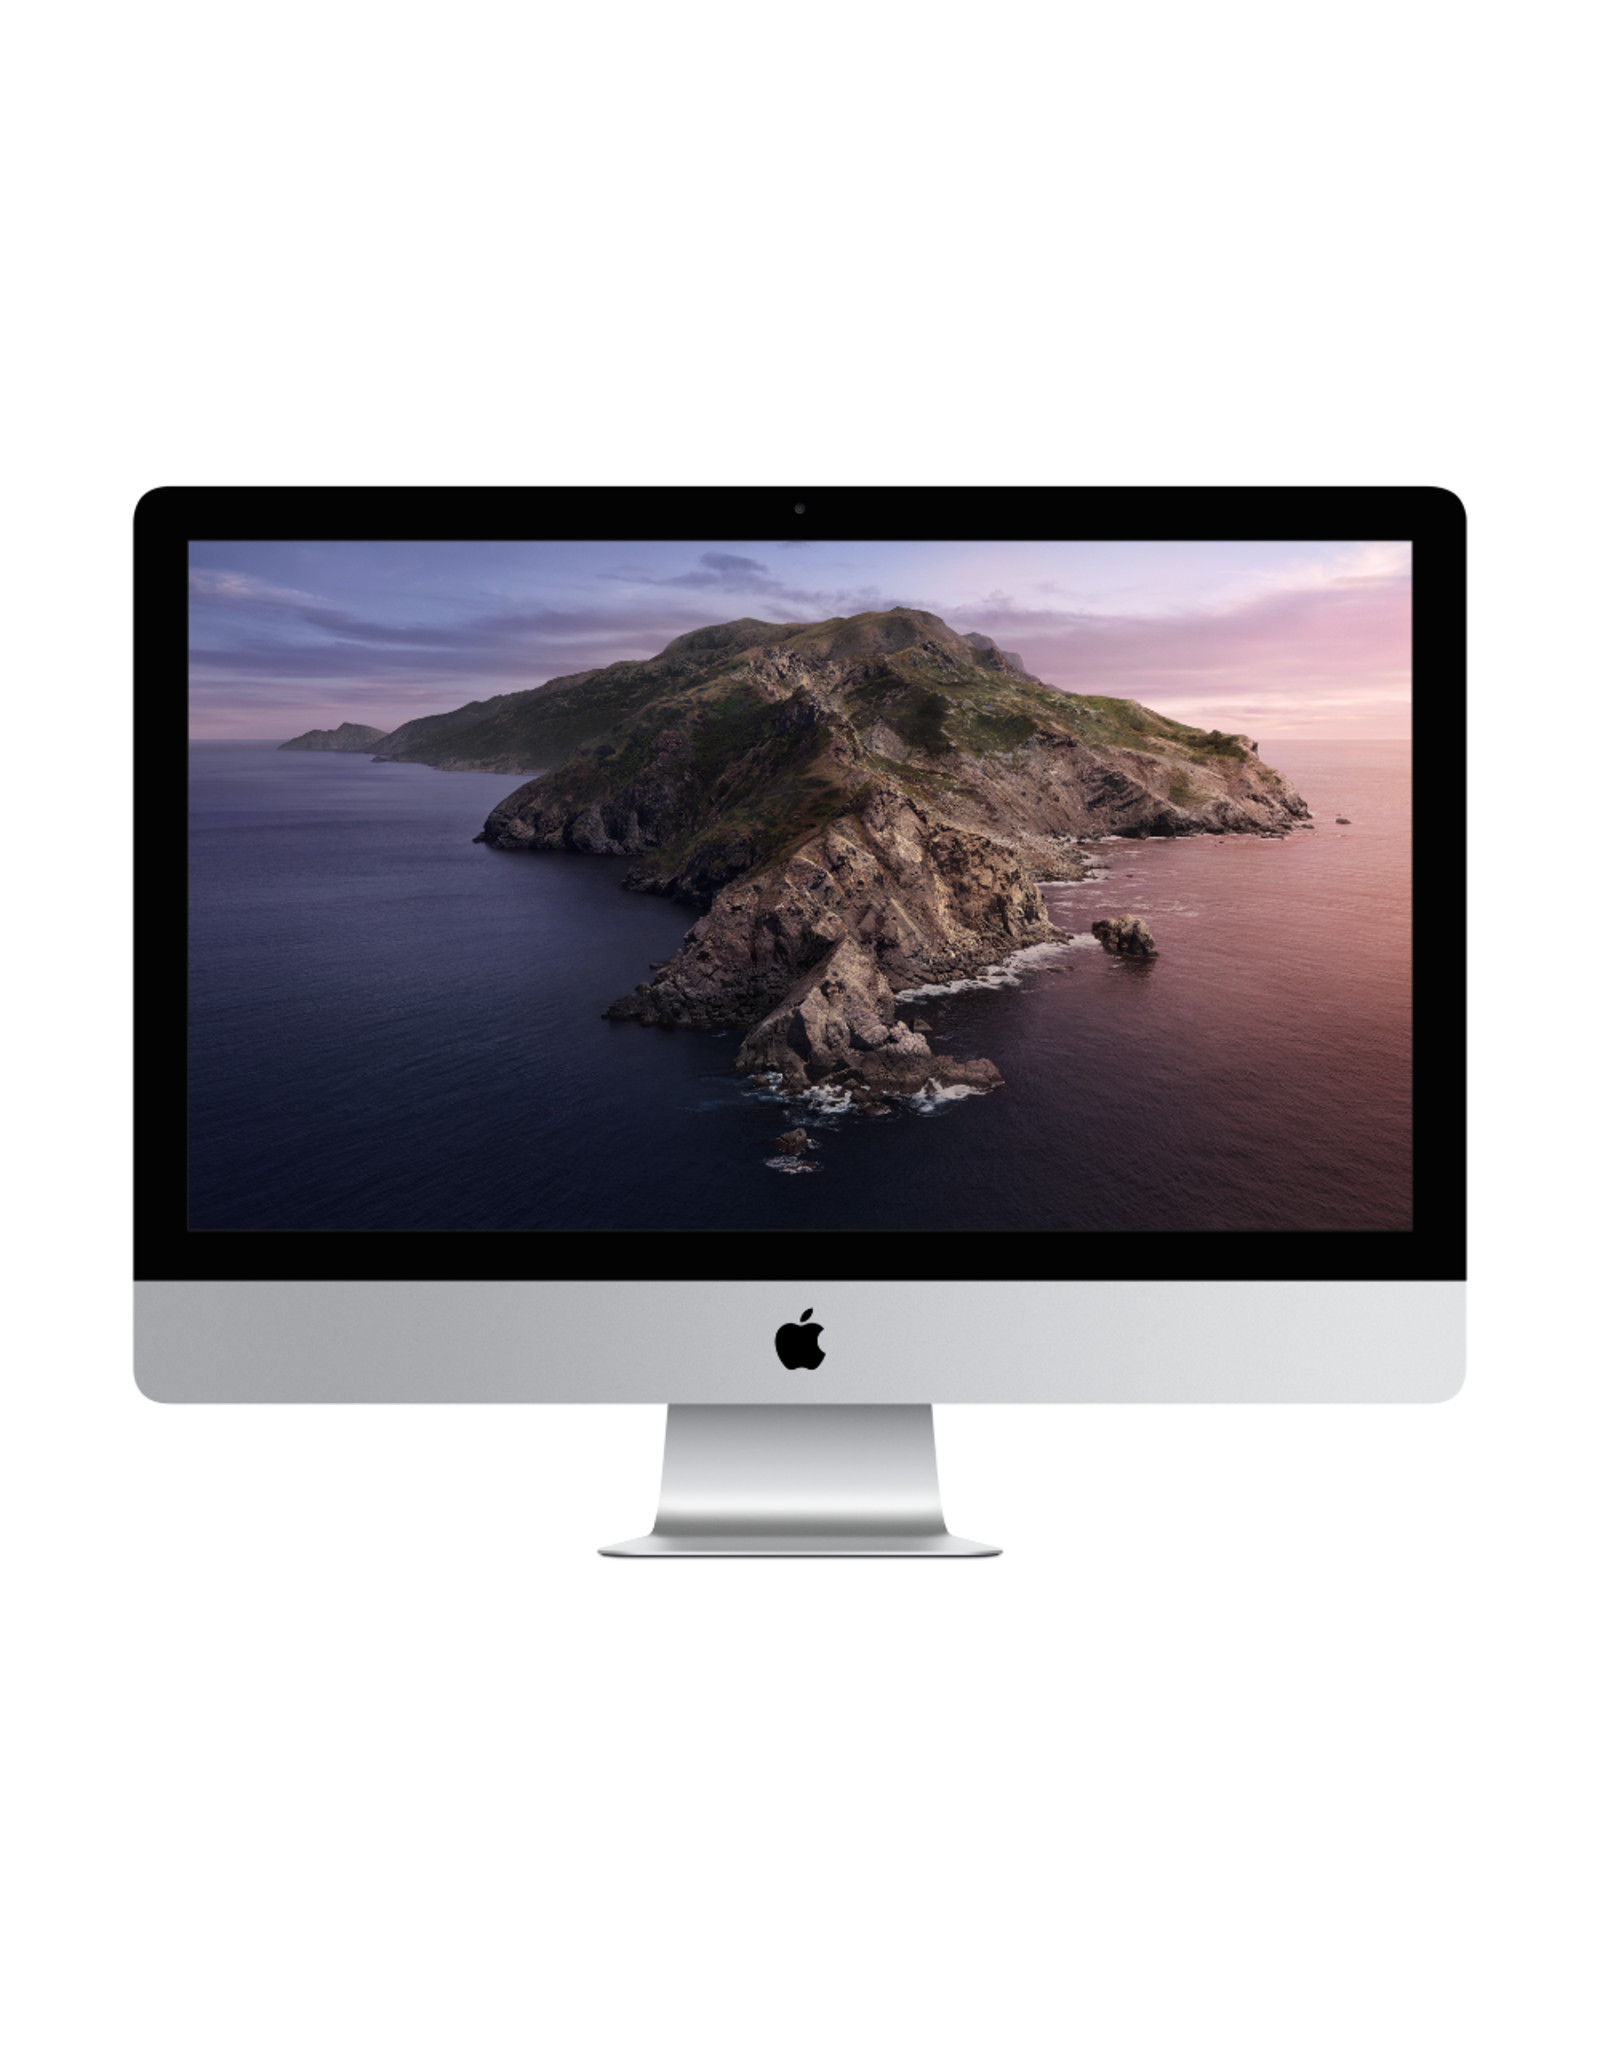 Apple 27-inch iMac Retina 5K 3.8GHz 8-core 10th-generation Intel Core i7/8GB/512GB SSD/Radeon Pro 5500 XT 8GB